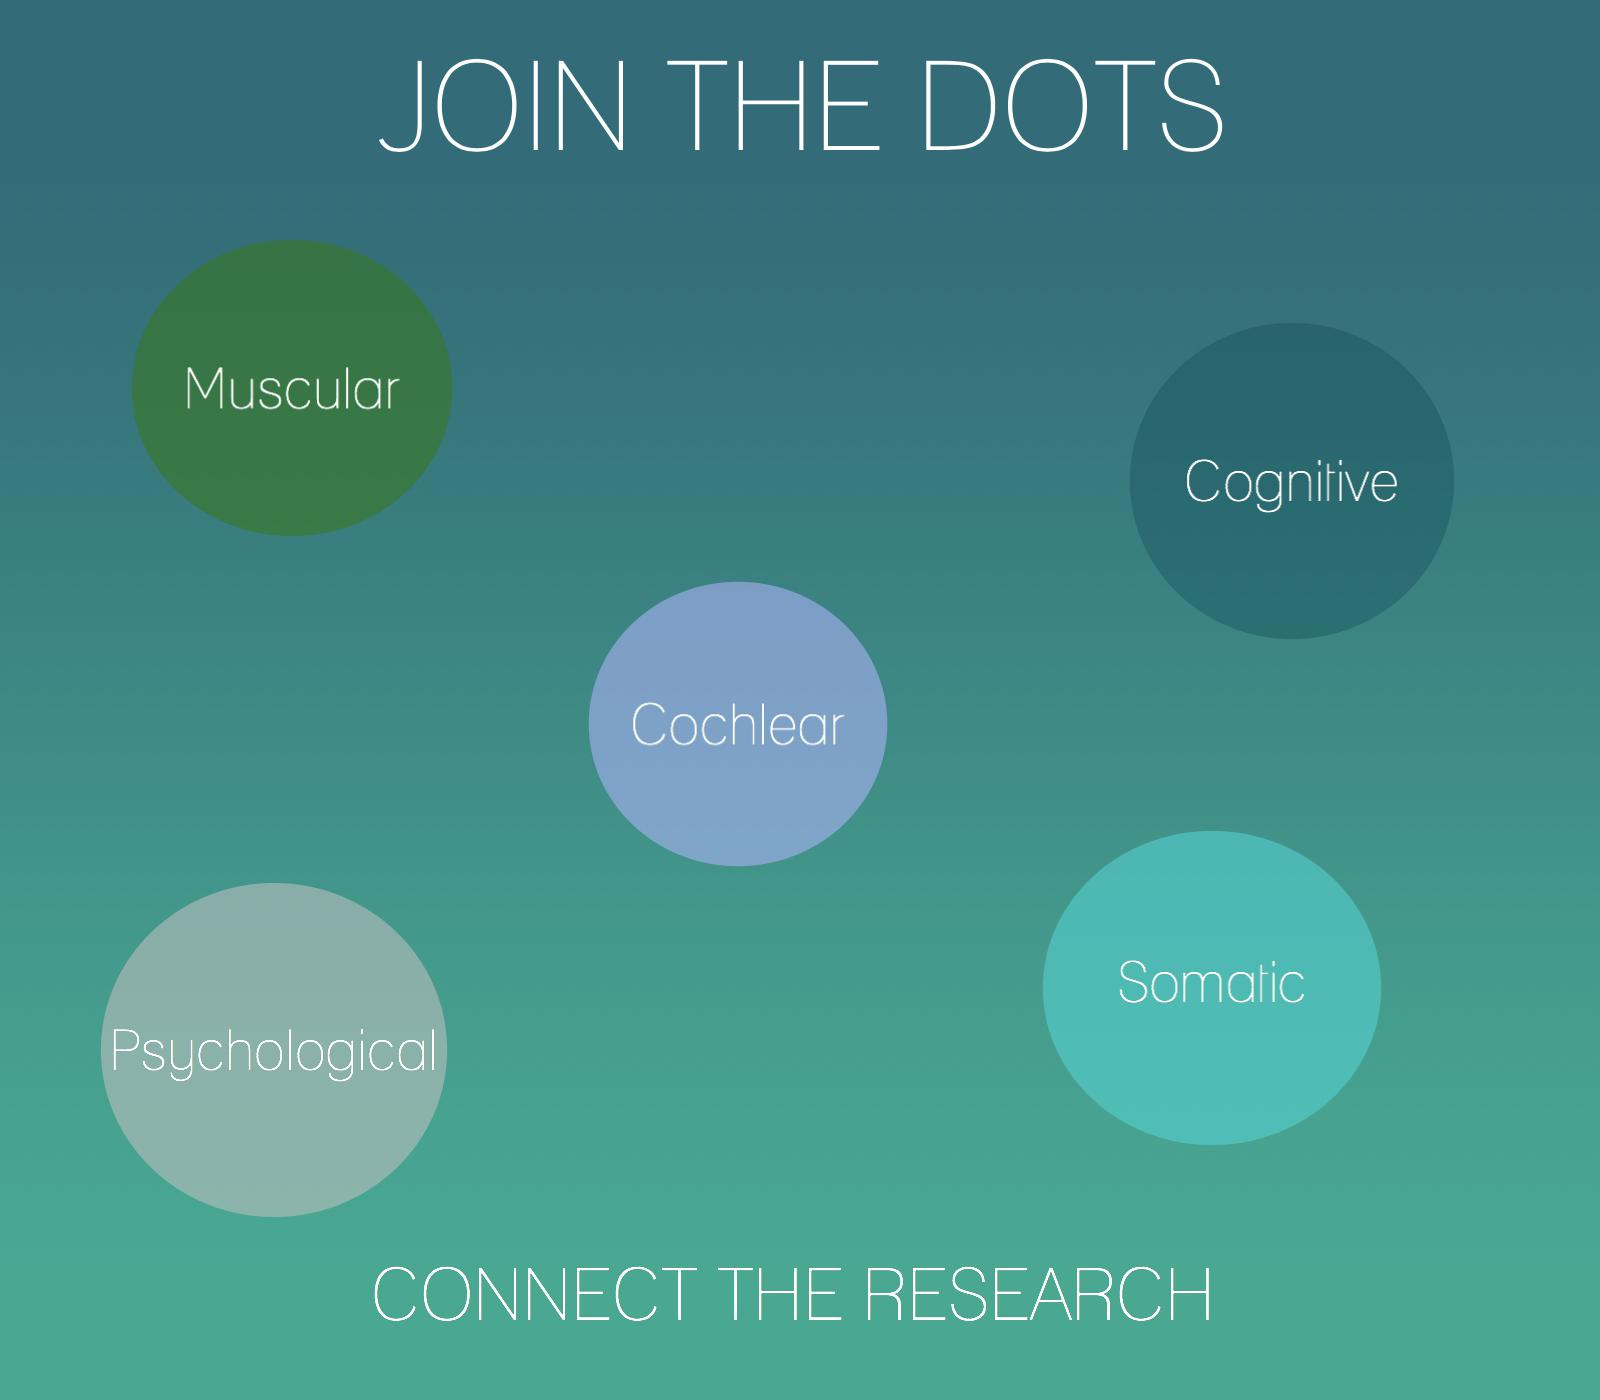 Join the dots pic.jpeg